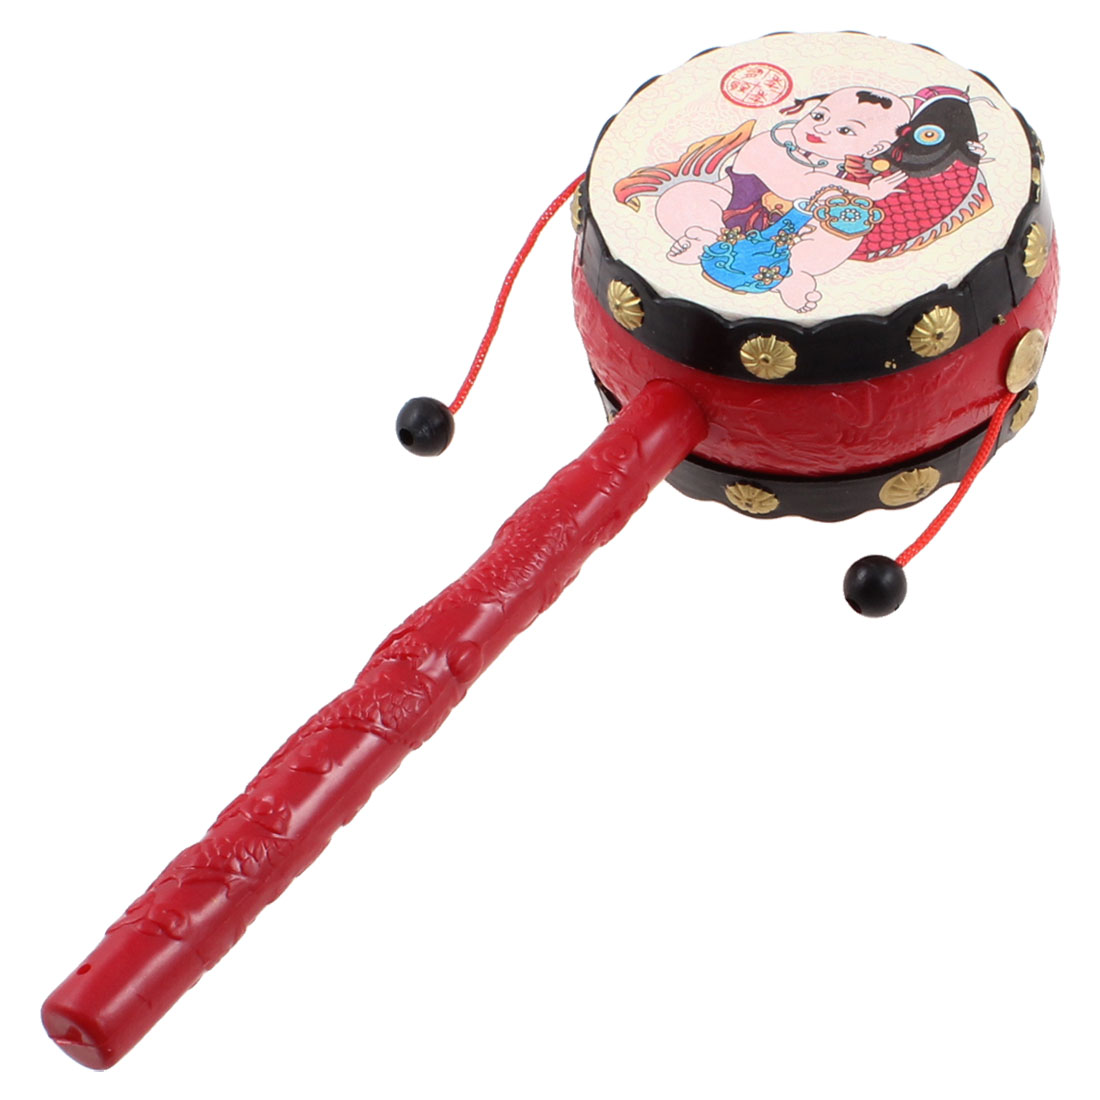 Baby-Child-Dragon-Print-Handle-Plastic-Rattle-Drum-Music-Toy-Red